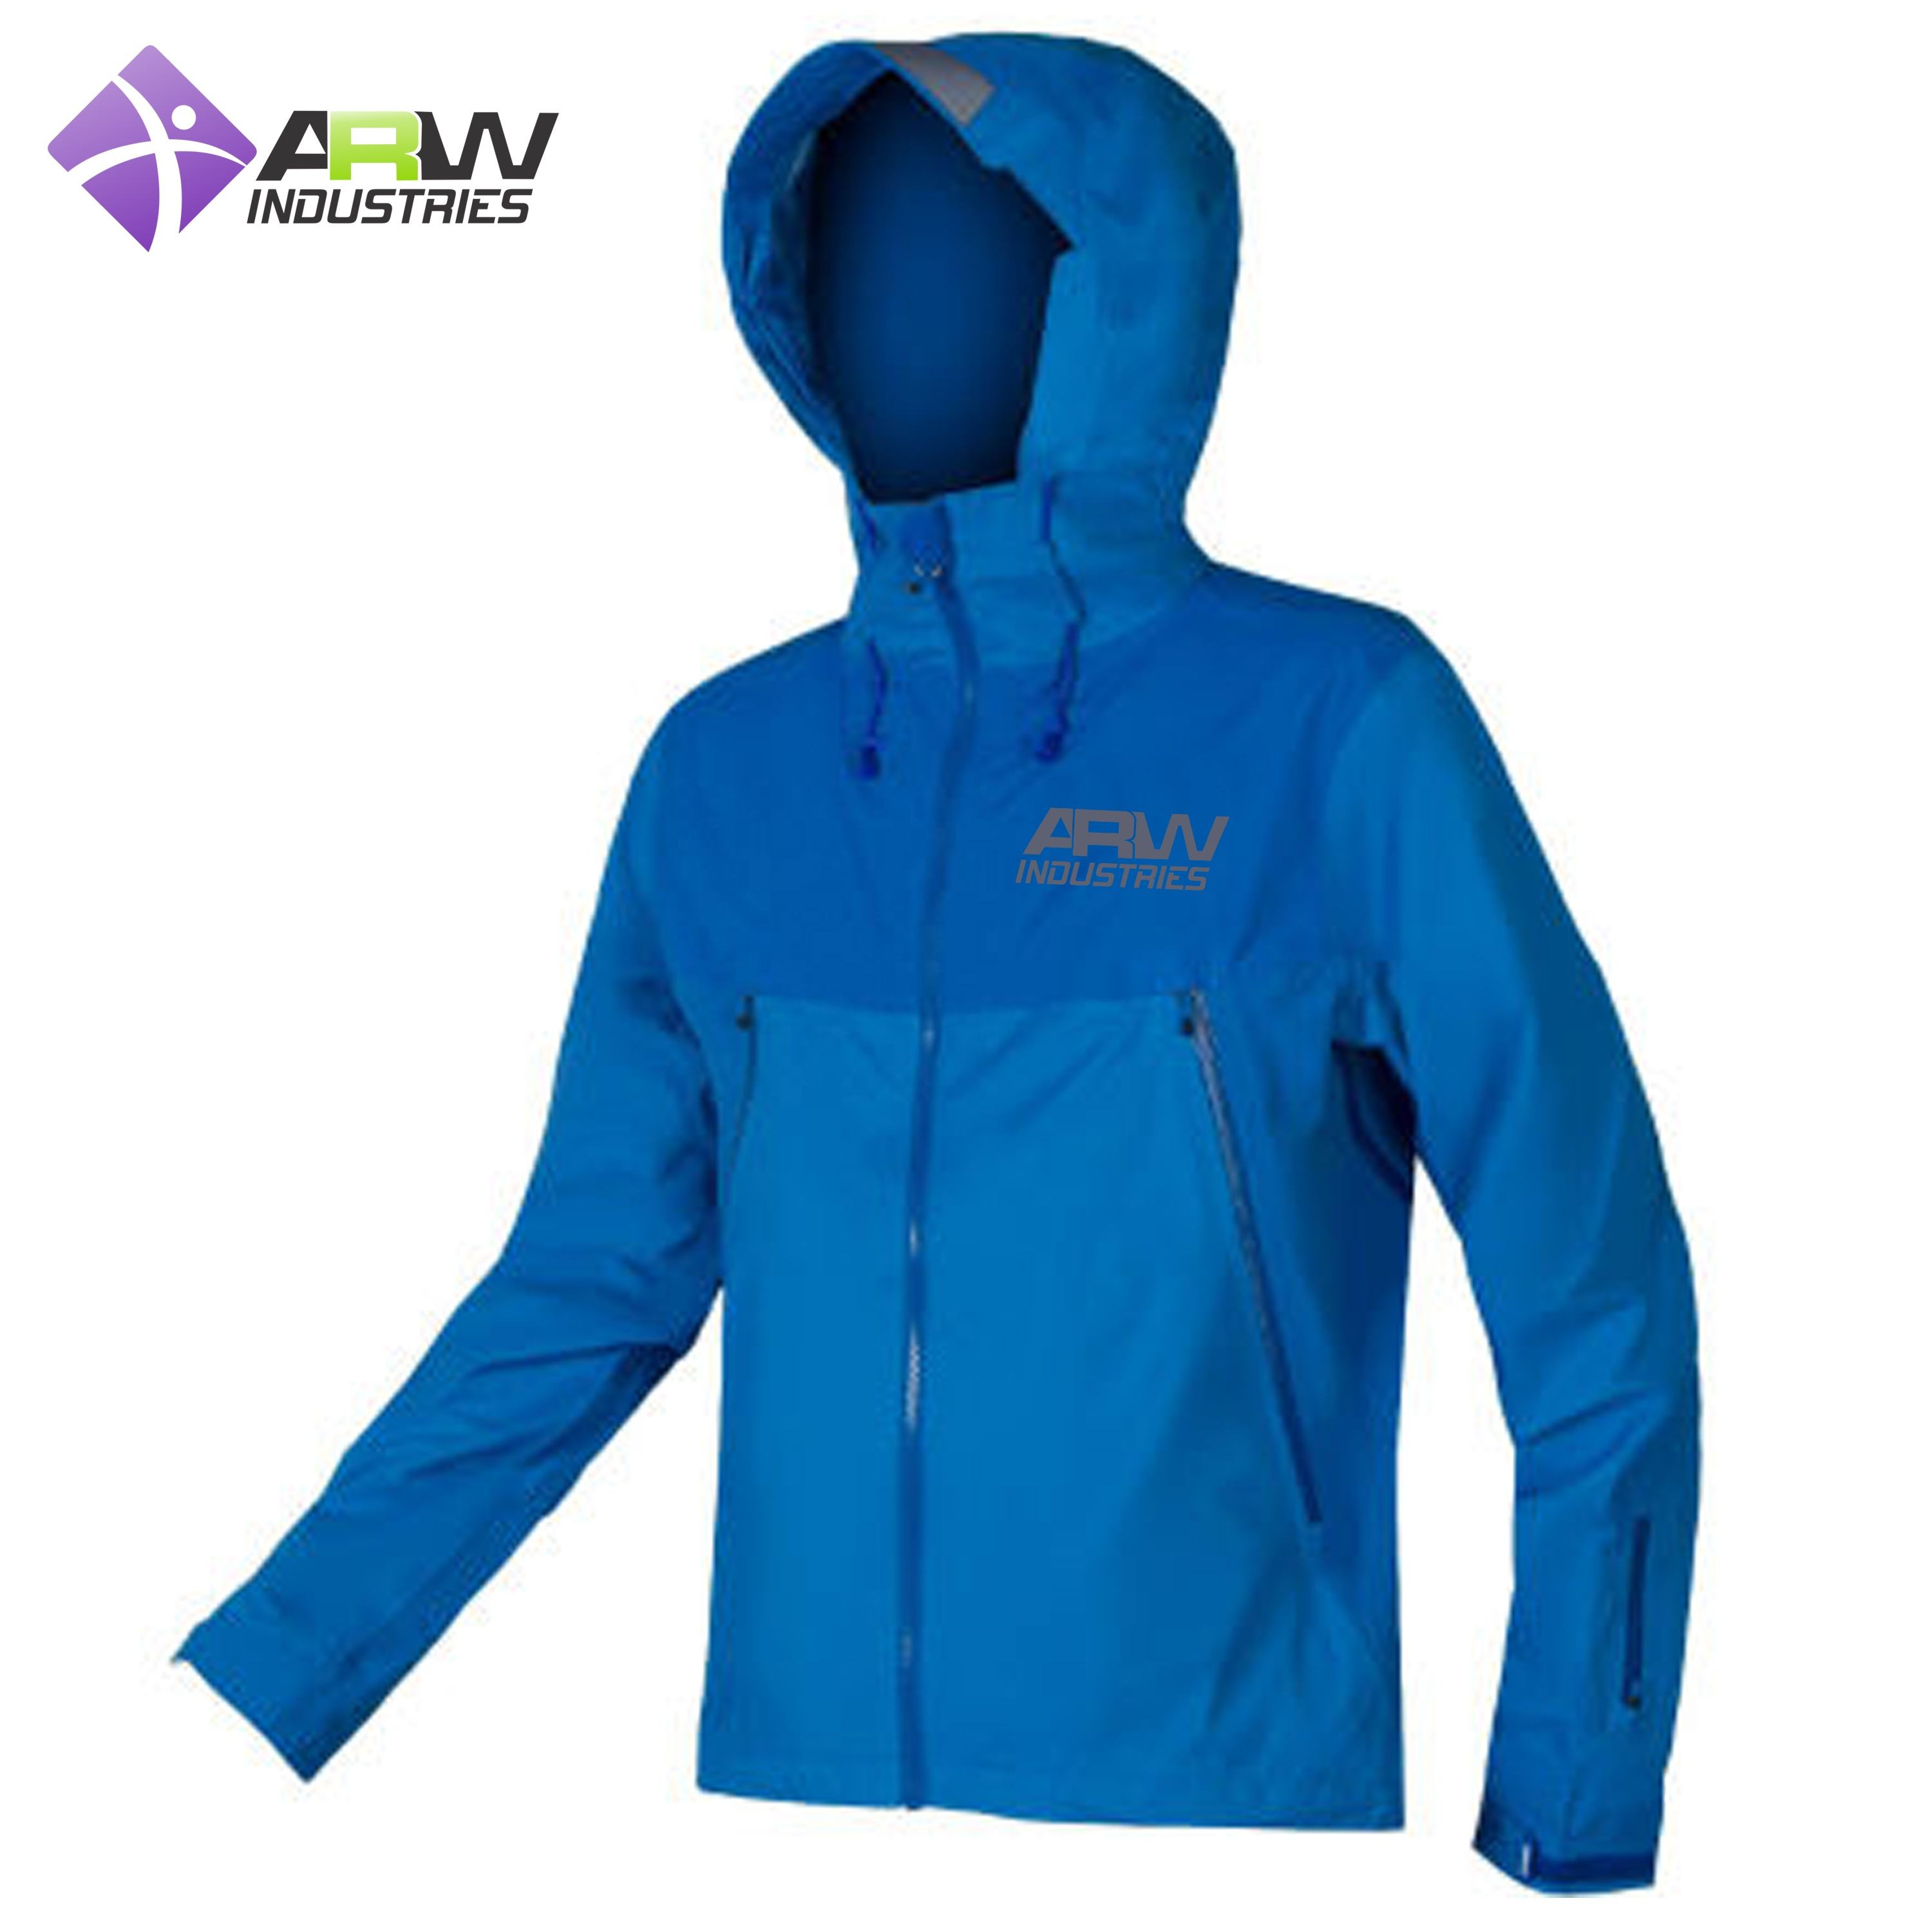 CUSTOM MADE CYCLING WATER PROOF JACKETS WIND PROOF JACKETS